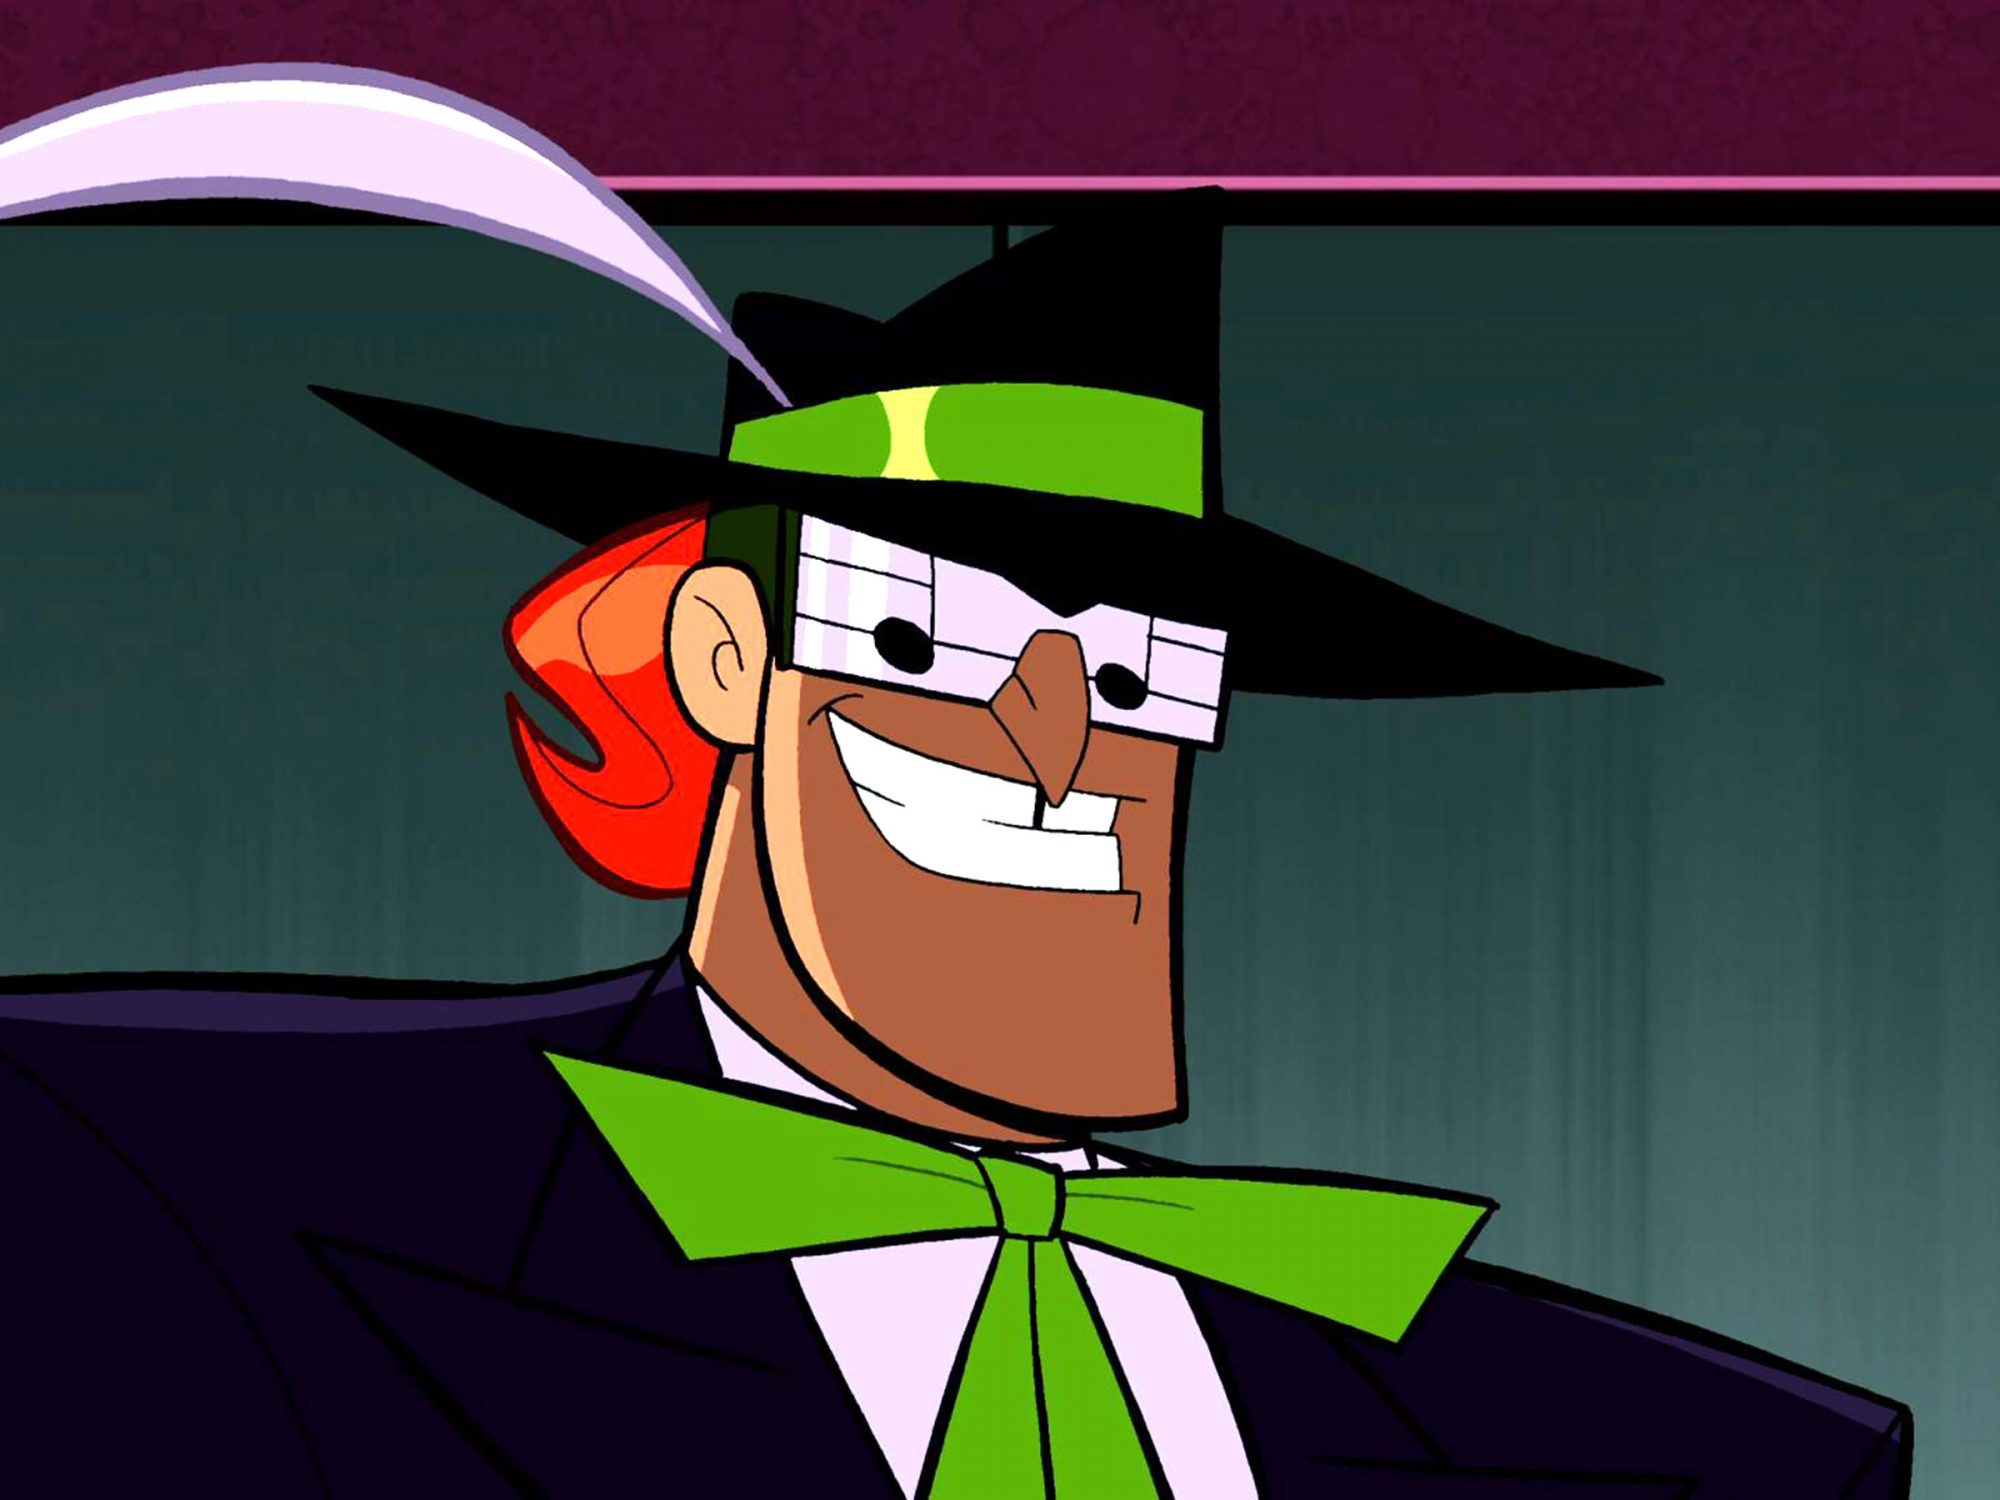 music-meister-comic-character